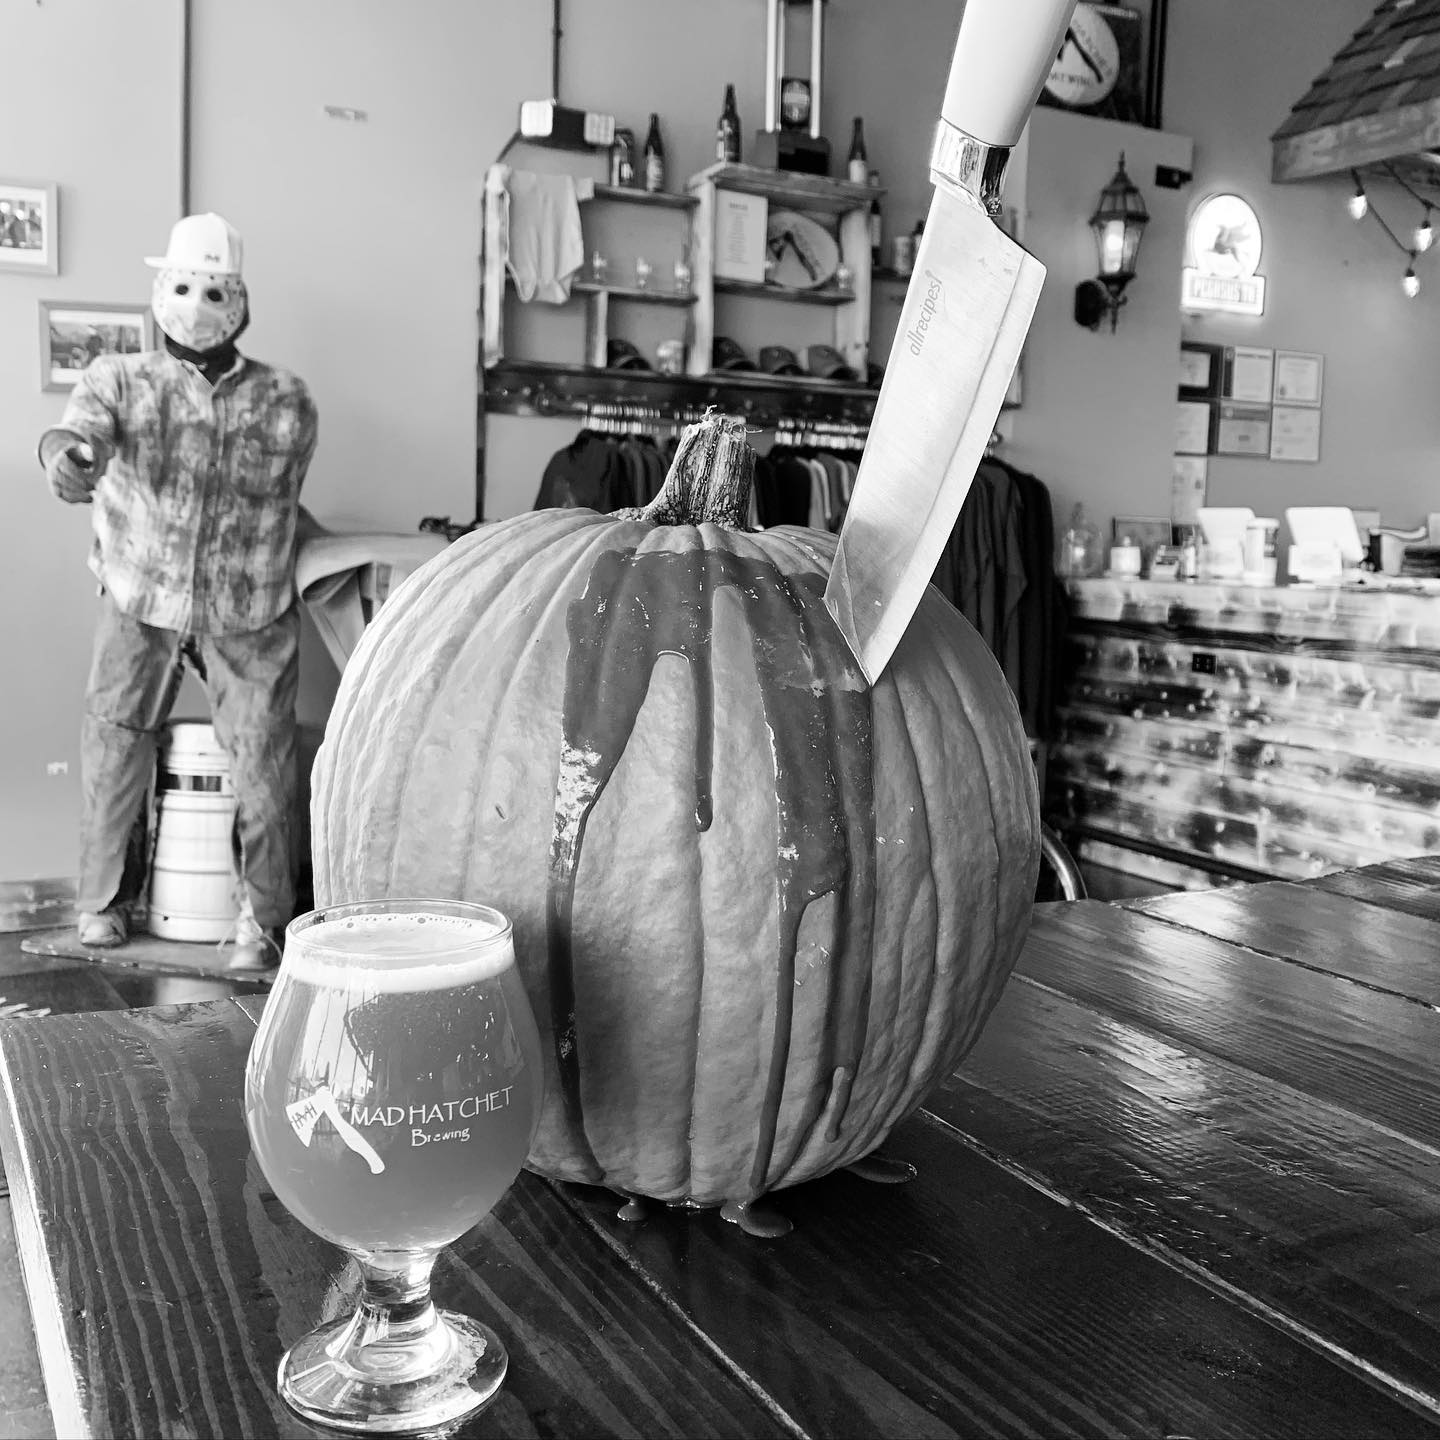 Pumpkin with knife plunged into it, beer in foreground